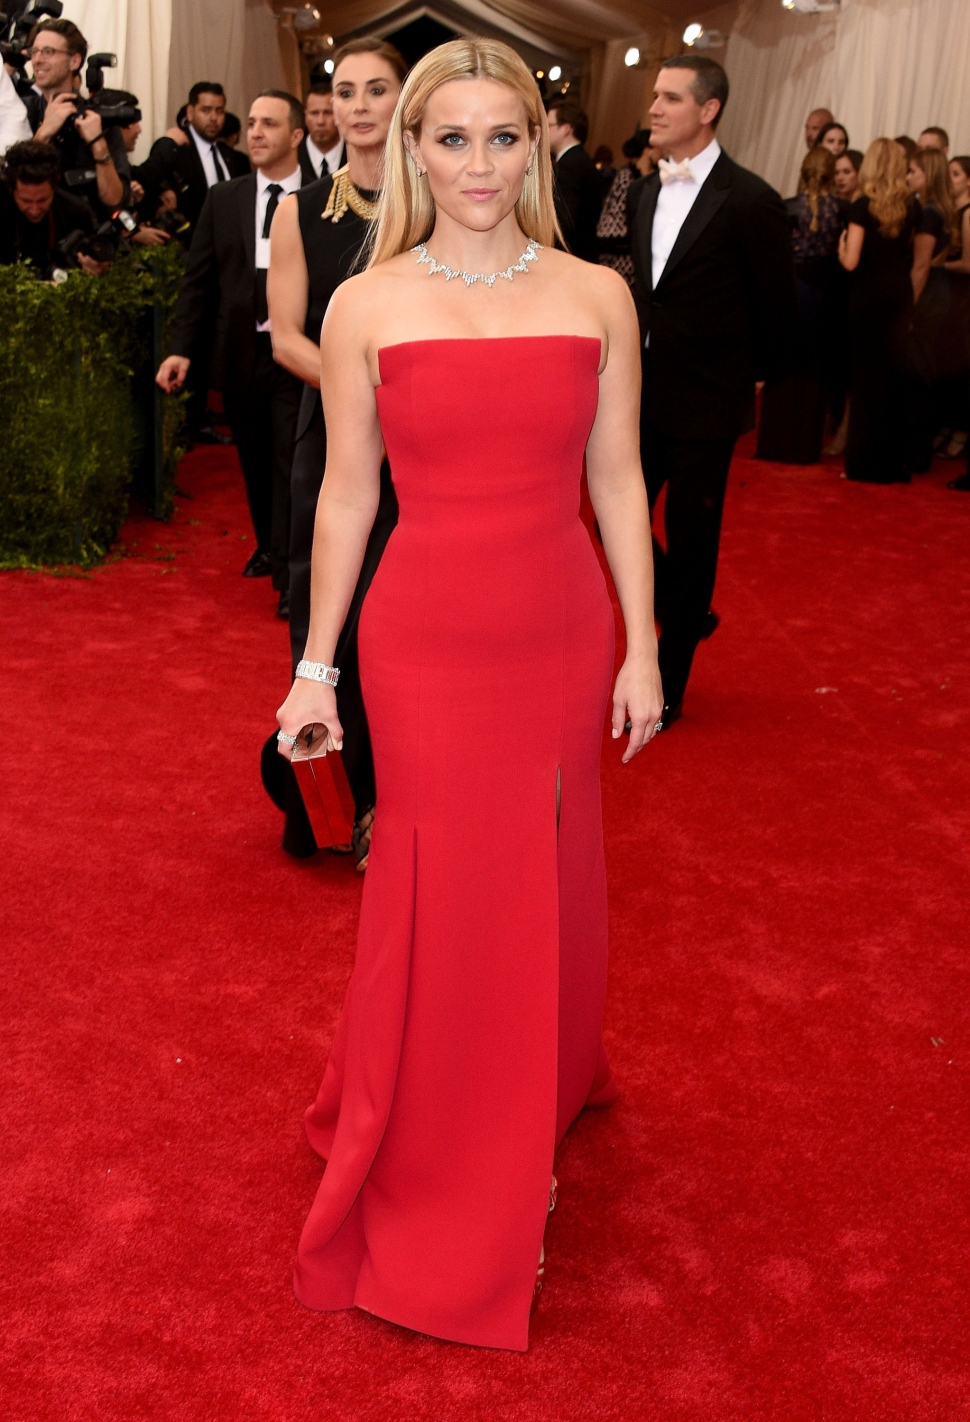 Reese Witherspoon in Givenchy and Tiffany diamonds. (Photo by Larry Busacca/Getty Images)